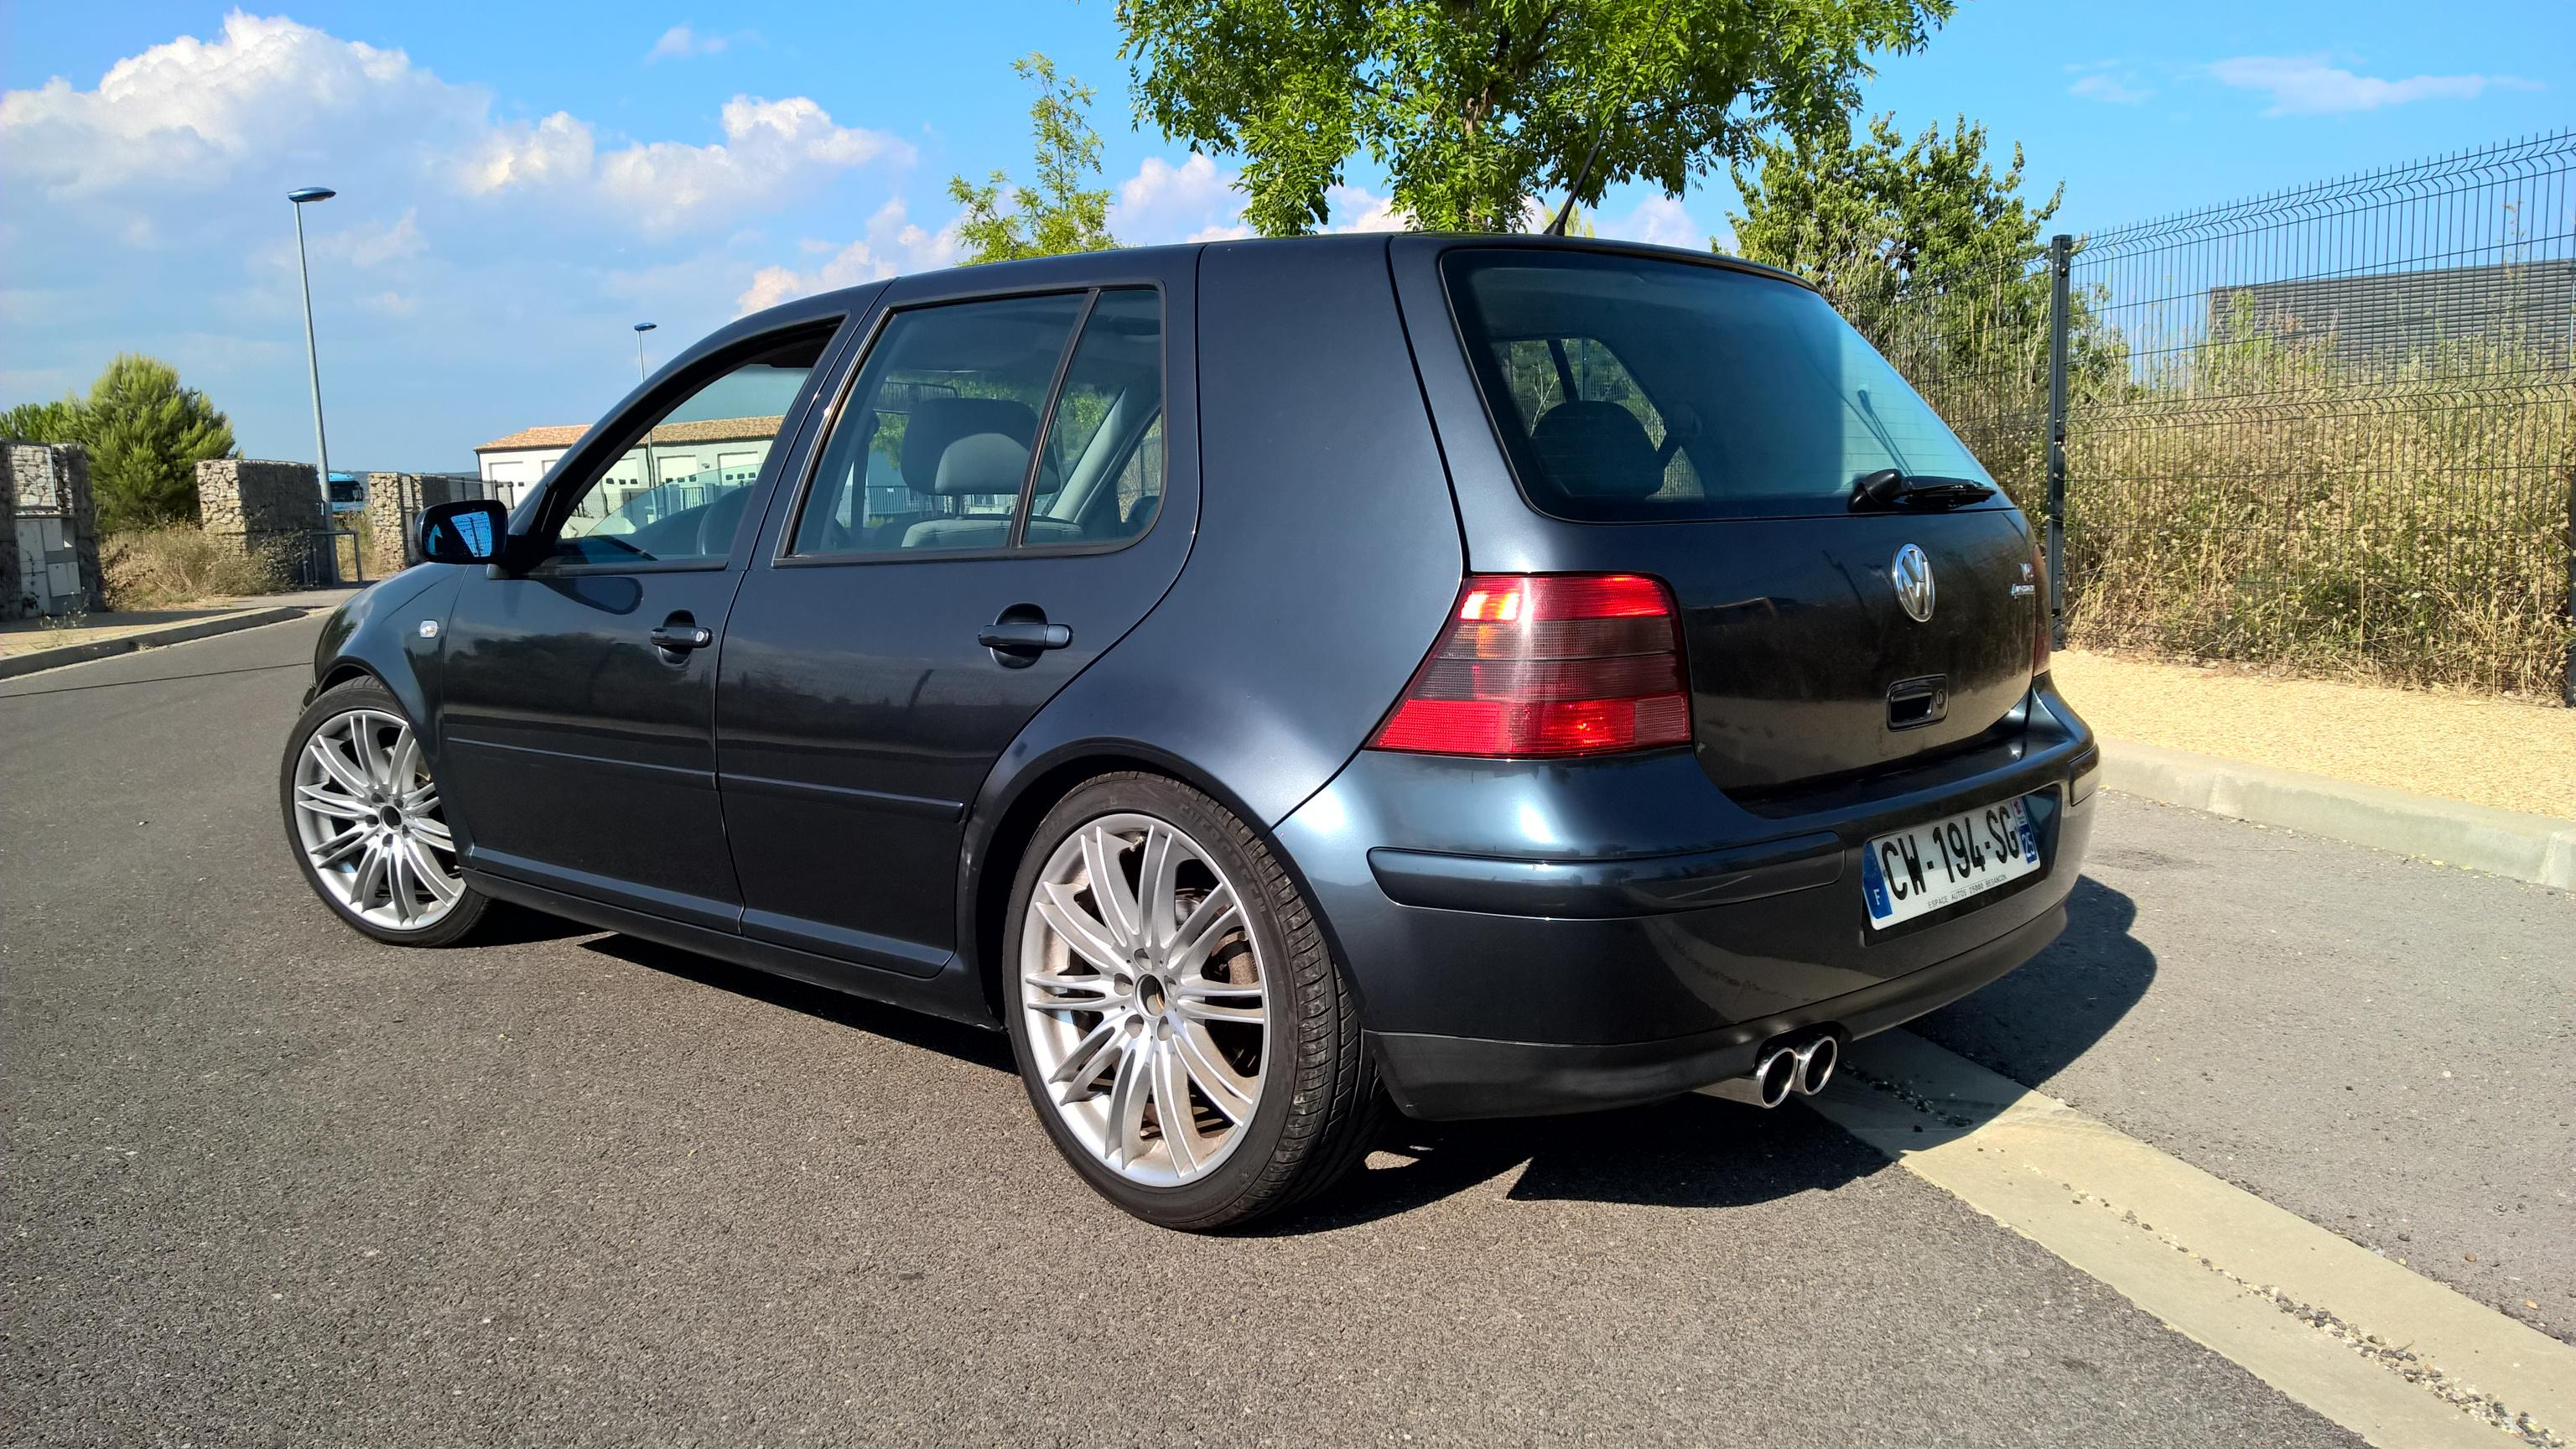 vw golf iv golf iv v6 de 2002 garage des golf iv 2 0 2 3 v5 v6 r32 forum. Black Bedroom Furniture Sets. Home Design Ideas